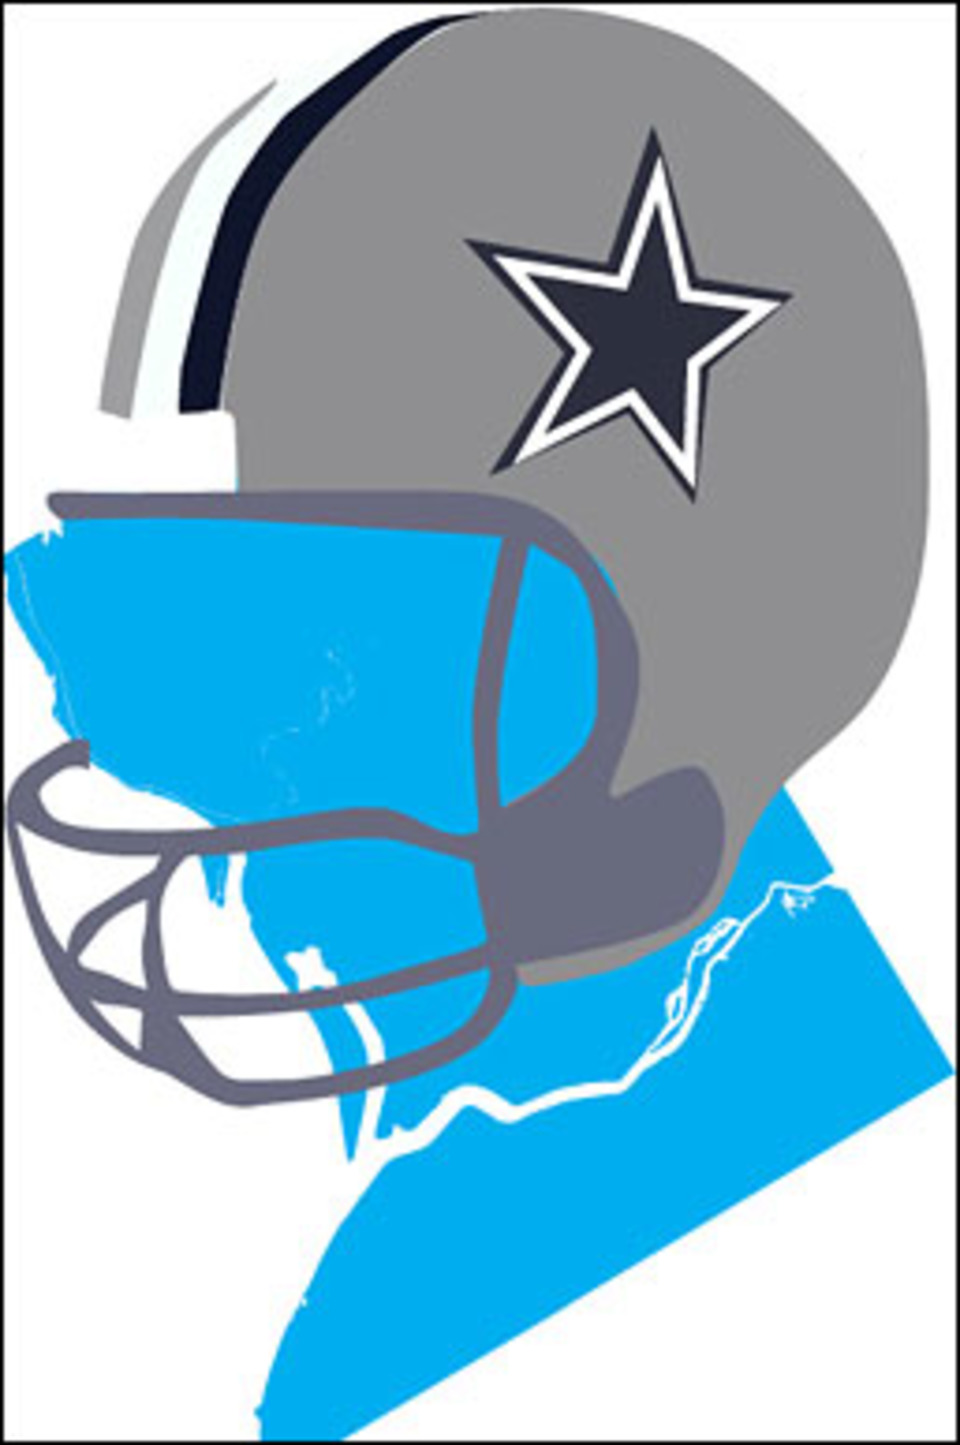 Dallas cowboys clipart helmet. At getdrawings com free